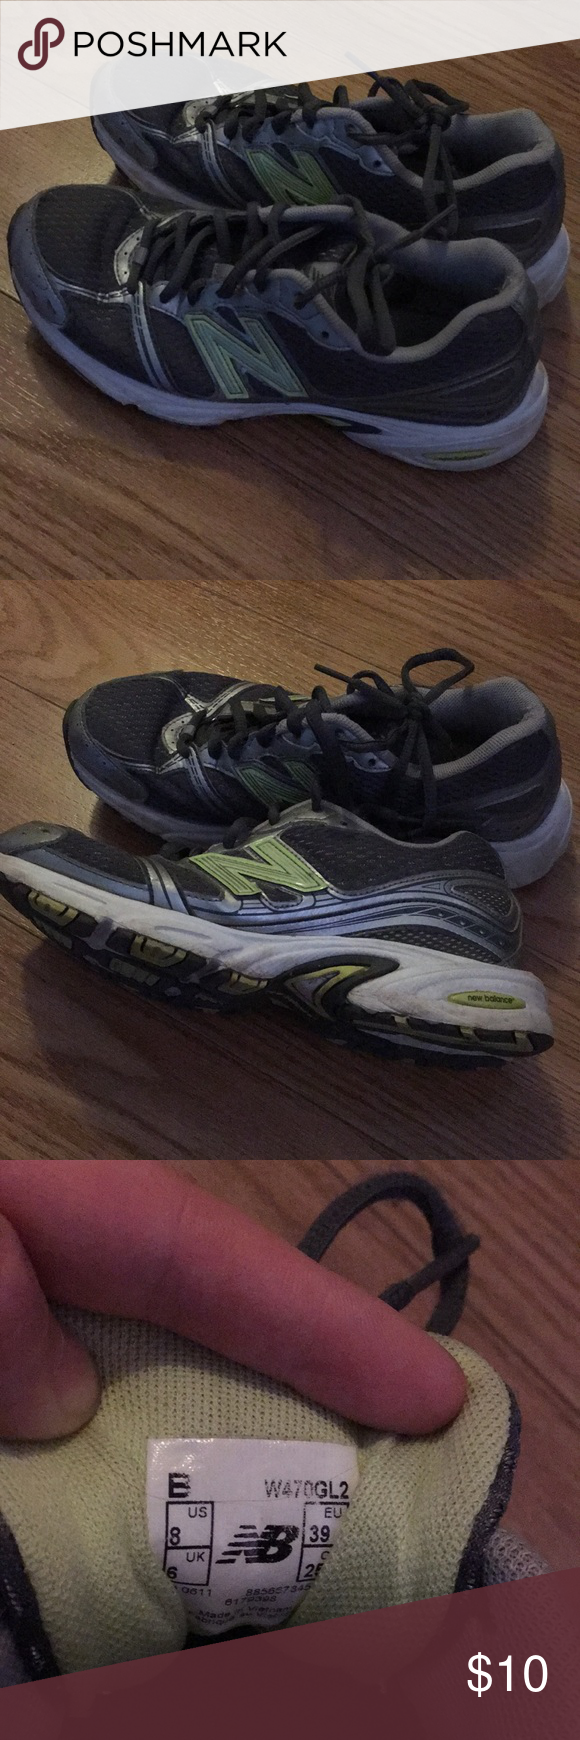 Shoes 👟 | Running shoes, Shoes